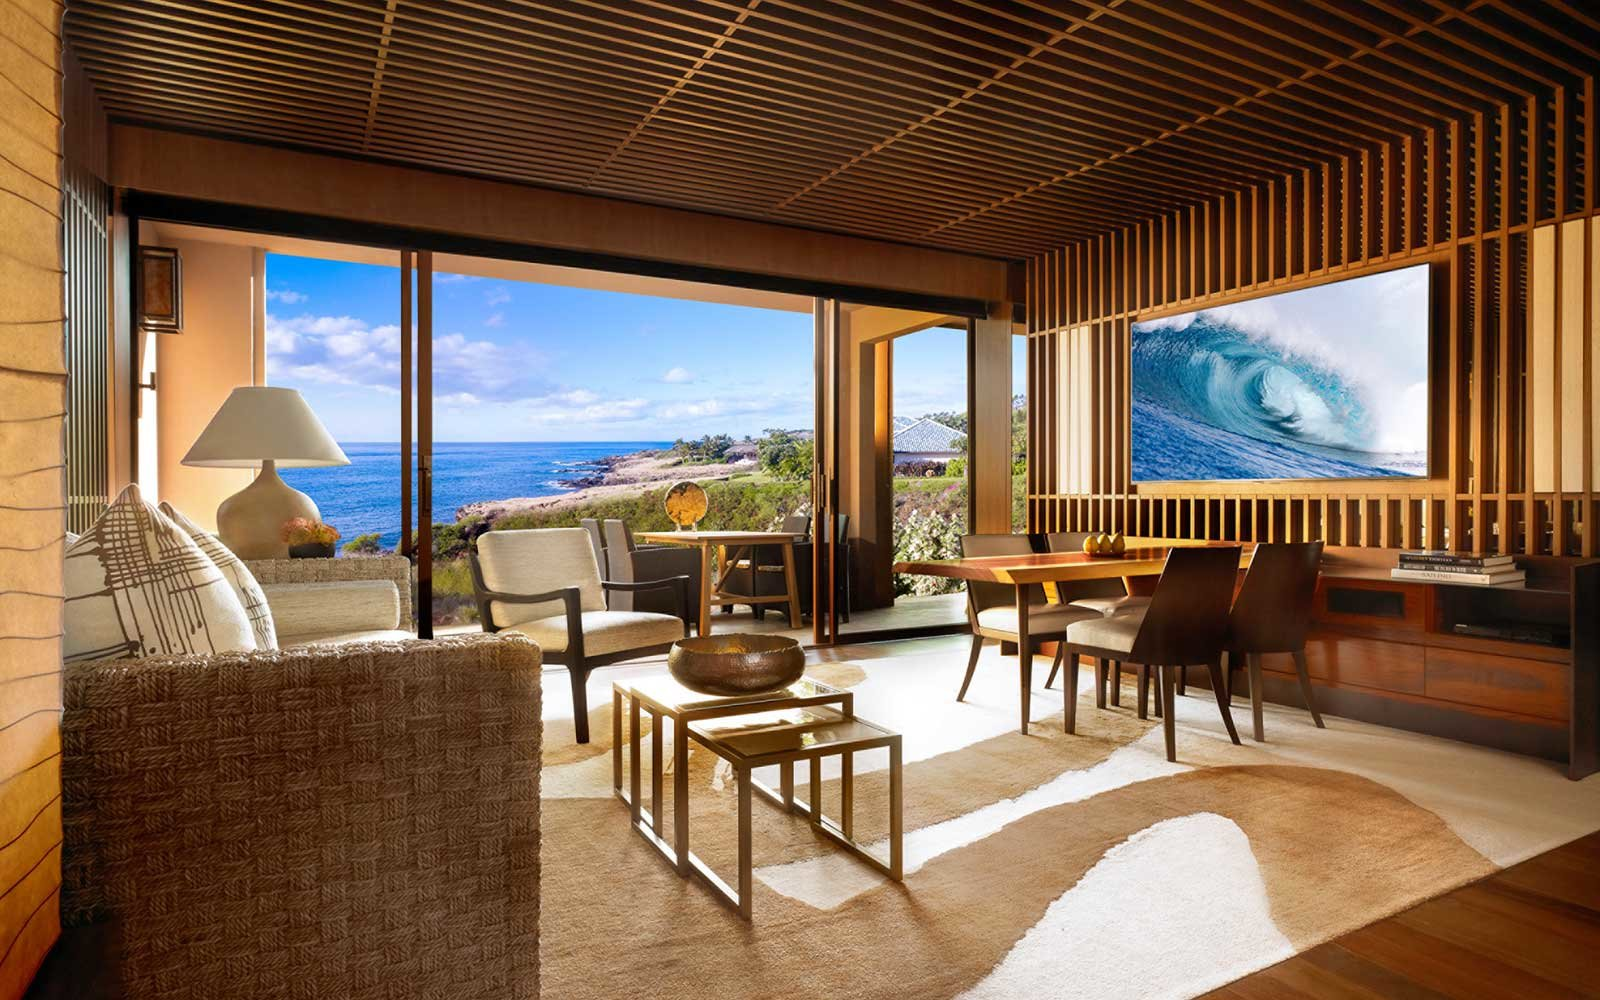 Four Seasons Resort Lanai Hotel in Hawaii